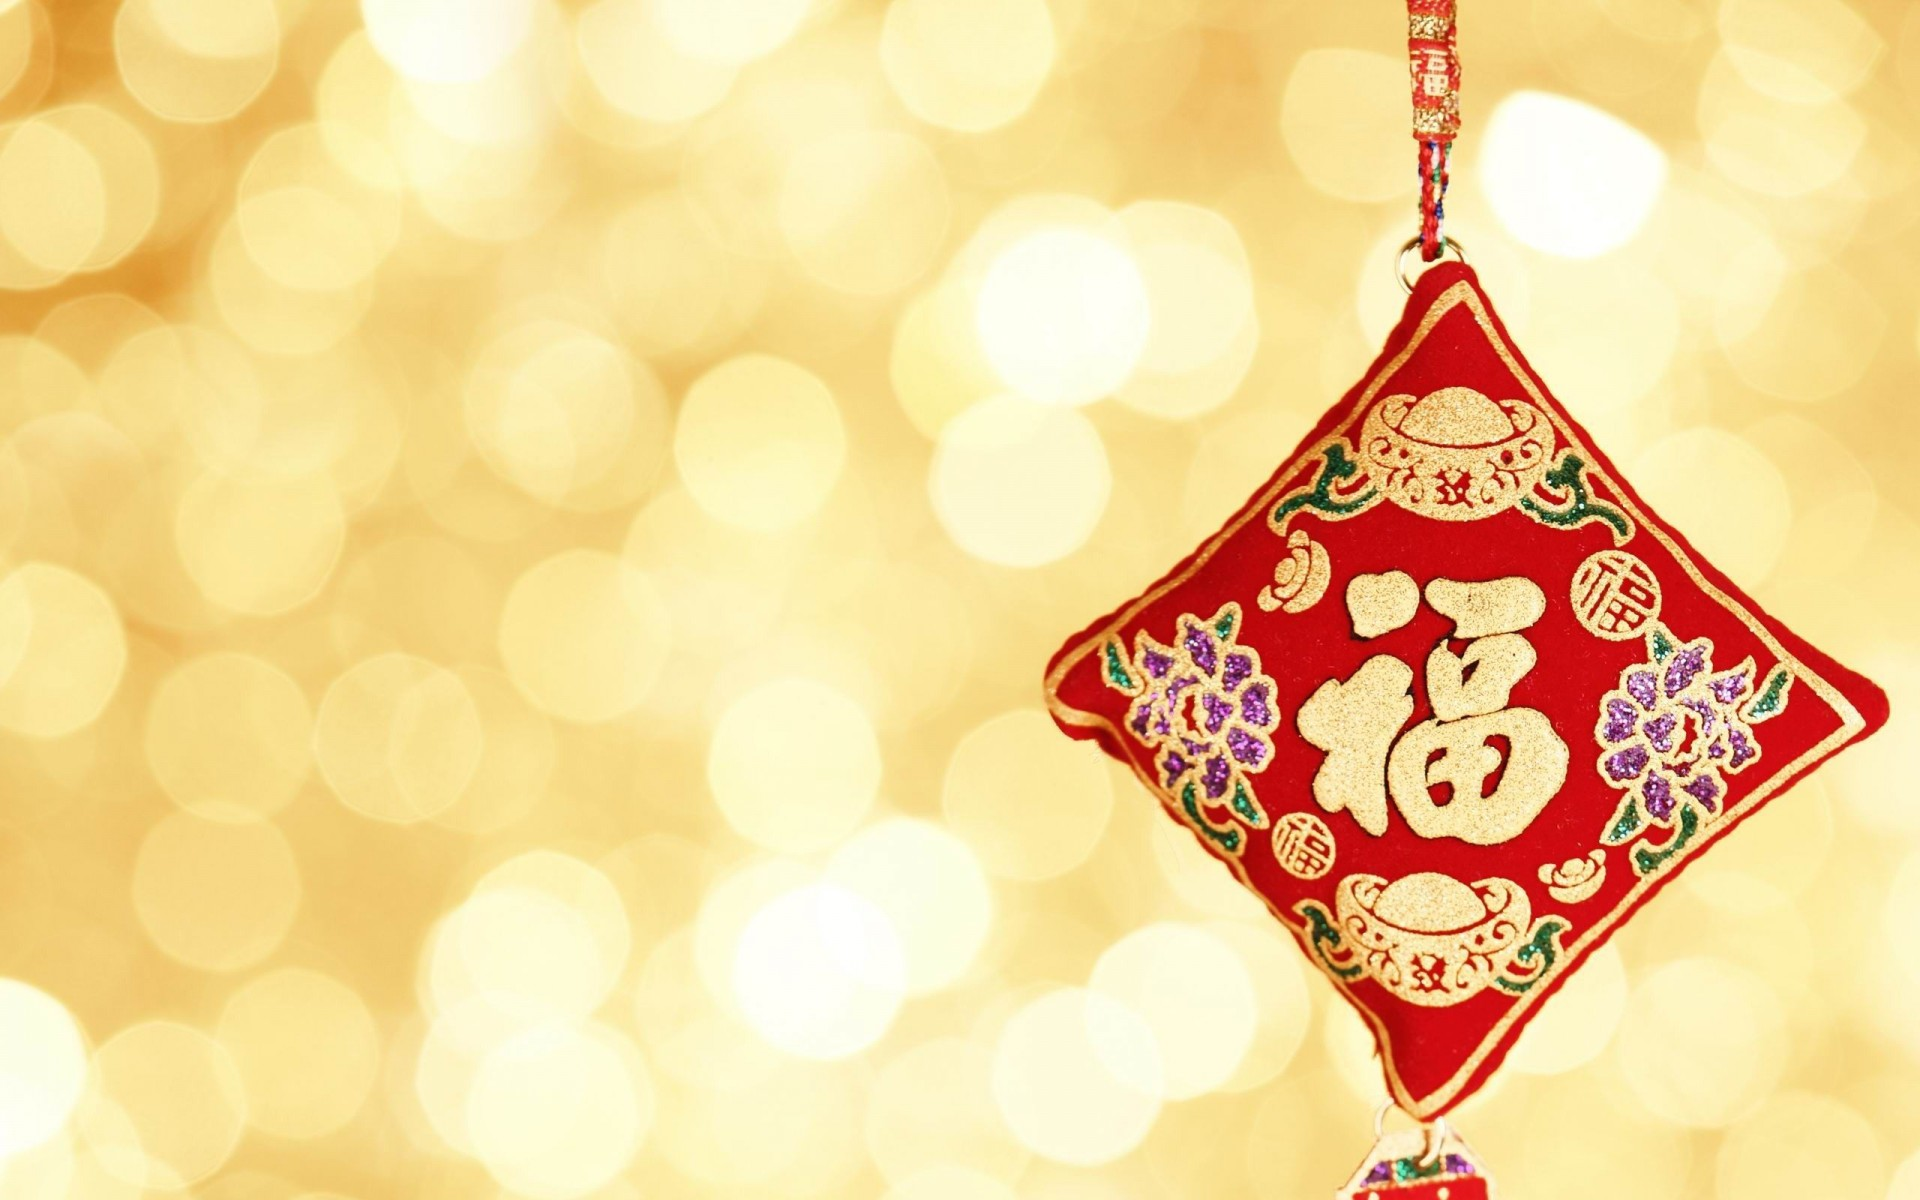 Happy Chinese New Year 2015 Wallpaper HD 13209 Wallpaper High 1920x1200